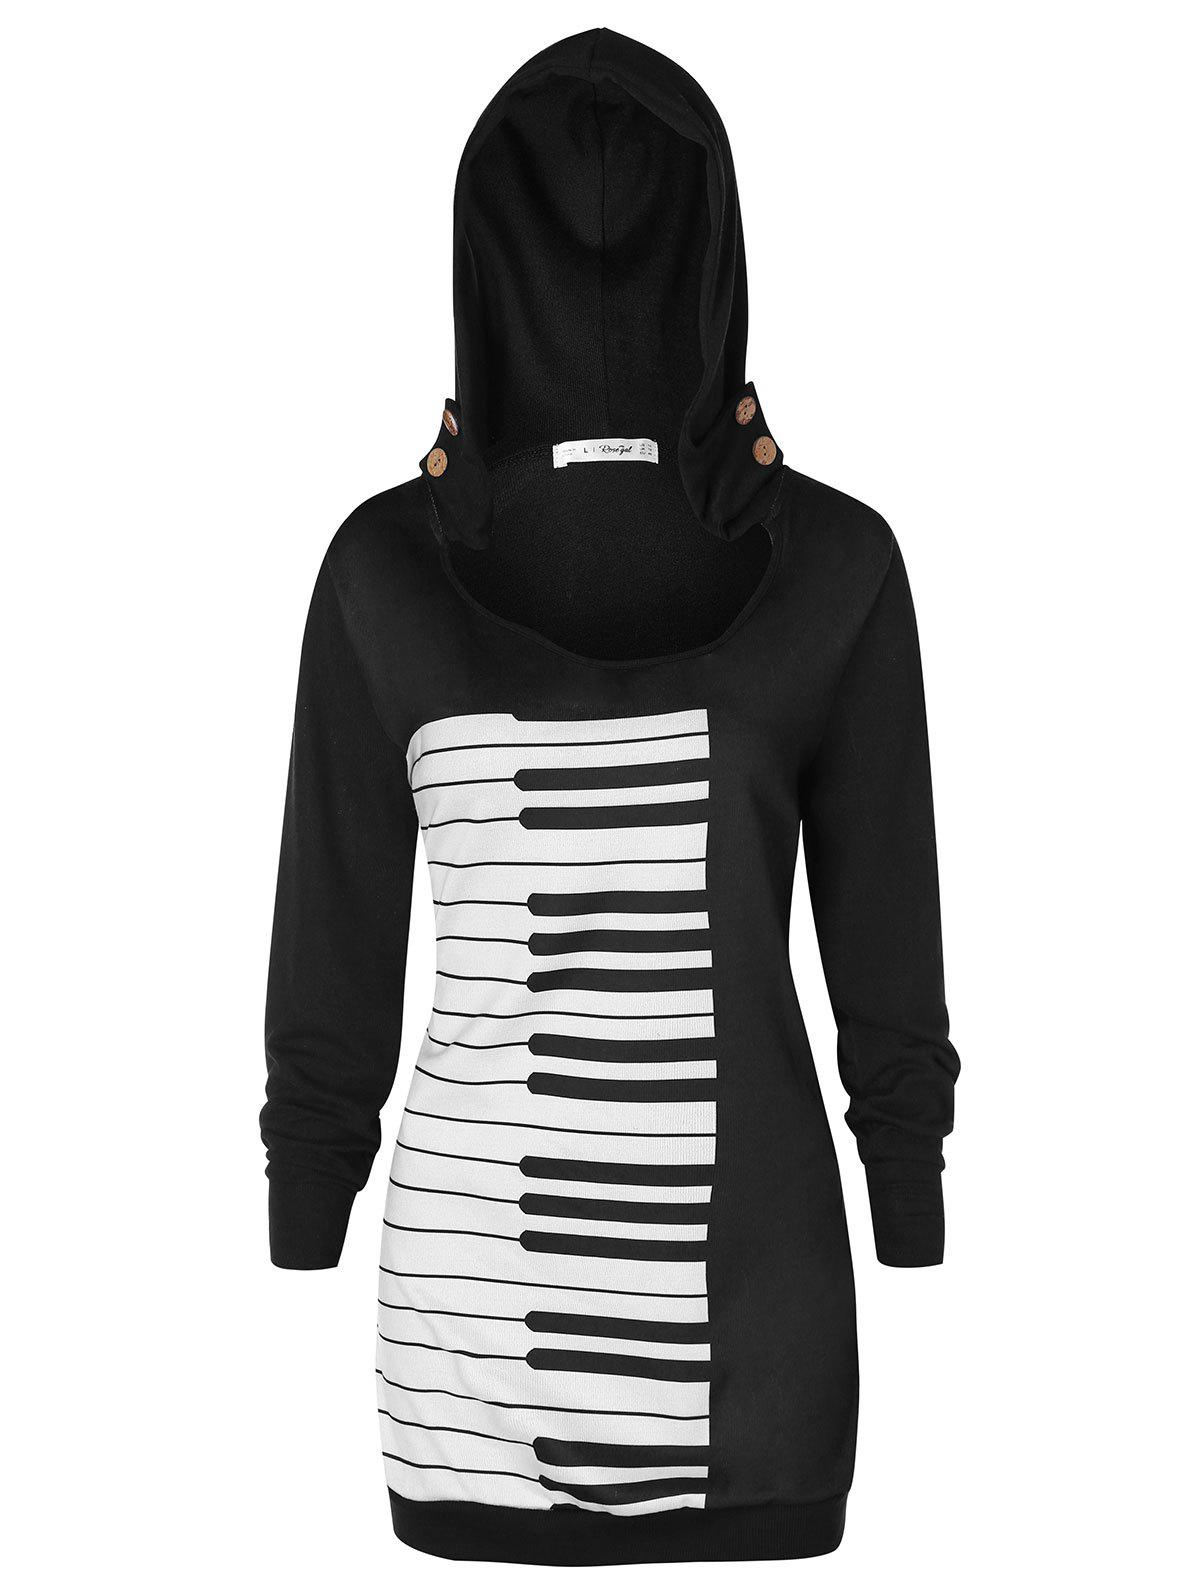 Plus Size Musical Notes Pullover Hoodie - BLACK 4X